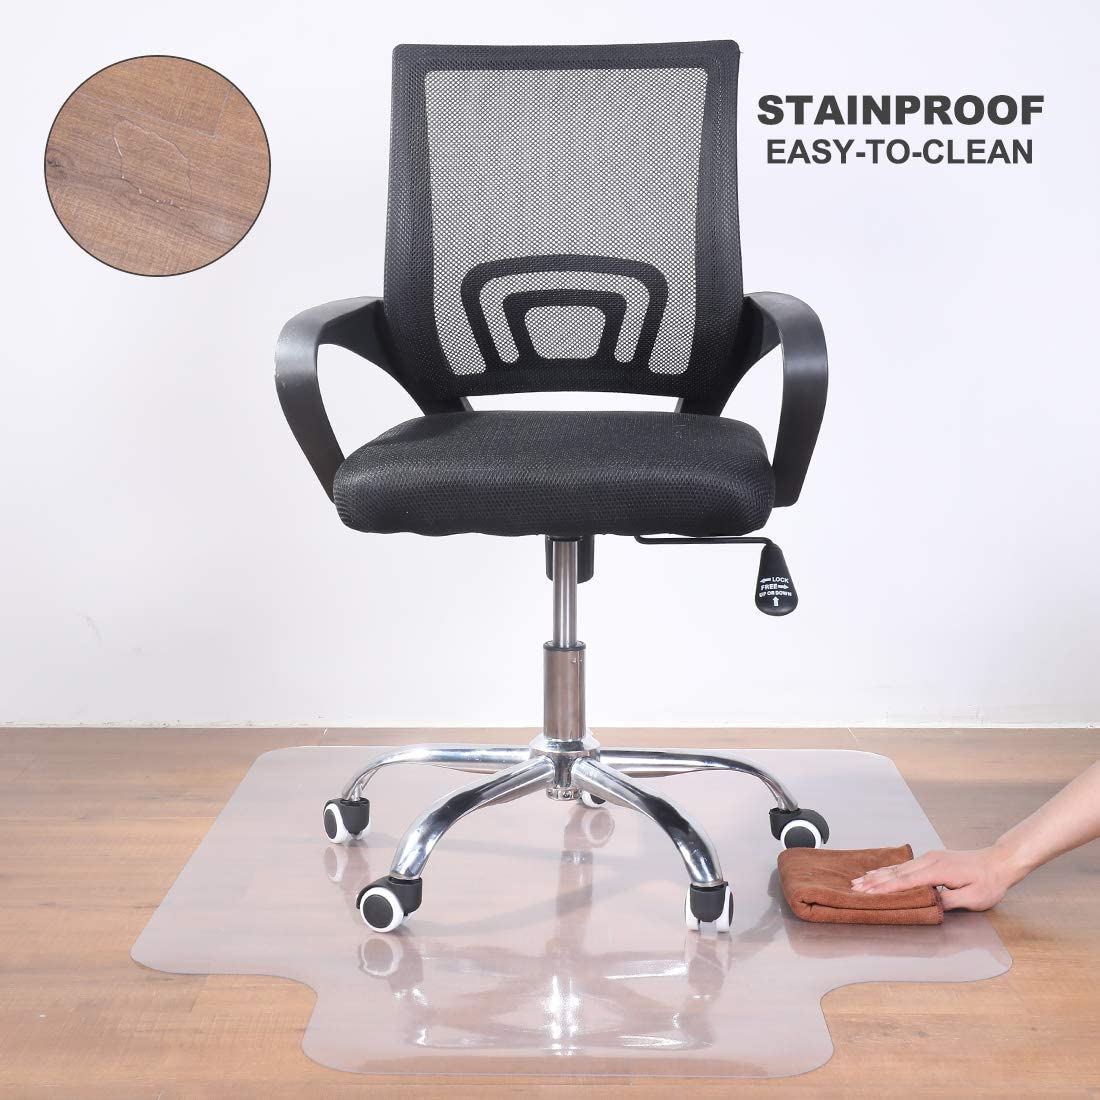 """Office Chair Mat for Hardwood Floor - 36""""x48"""" Clear PVC Desk Chair Mat - Heavy Duty Floor Protector for Home or Office - Easy Clean and Flat Without Curling : Office Products"""